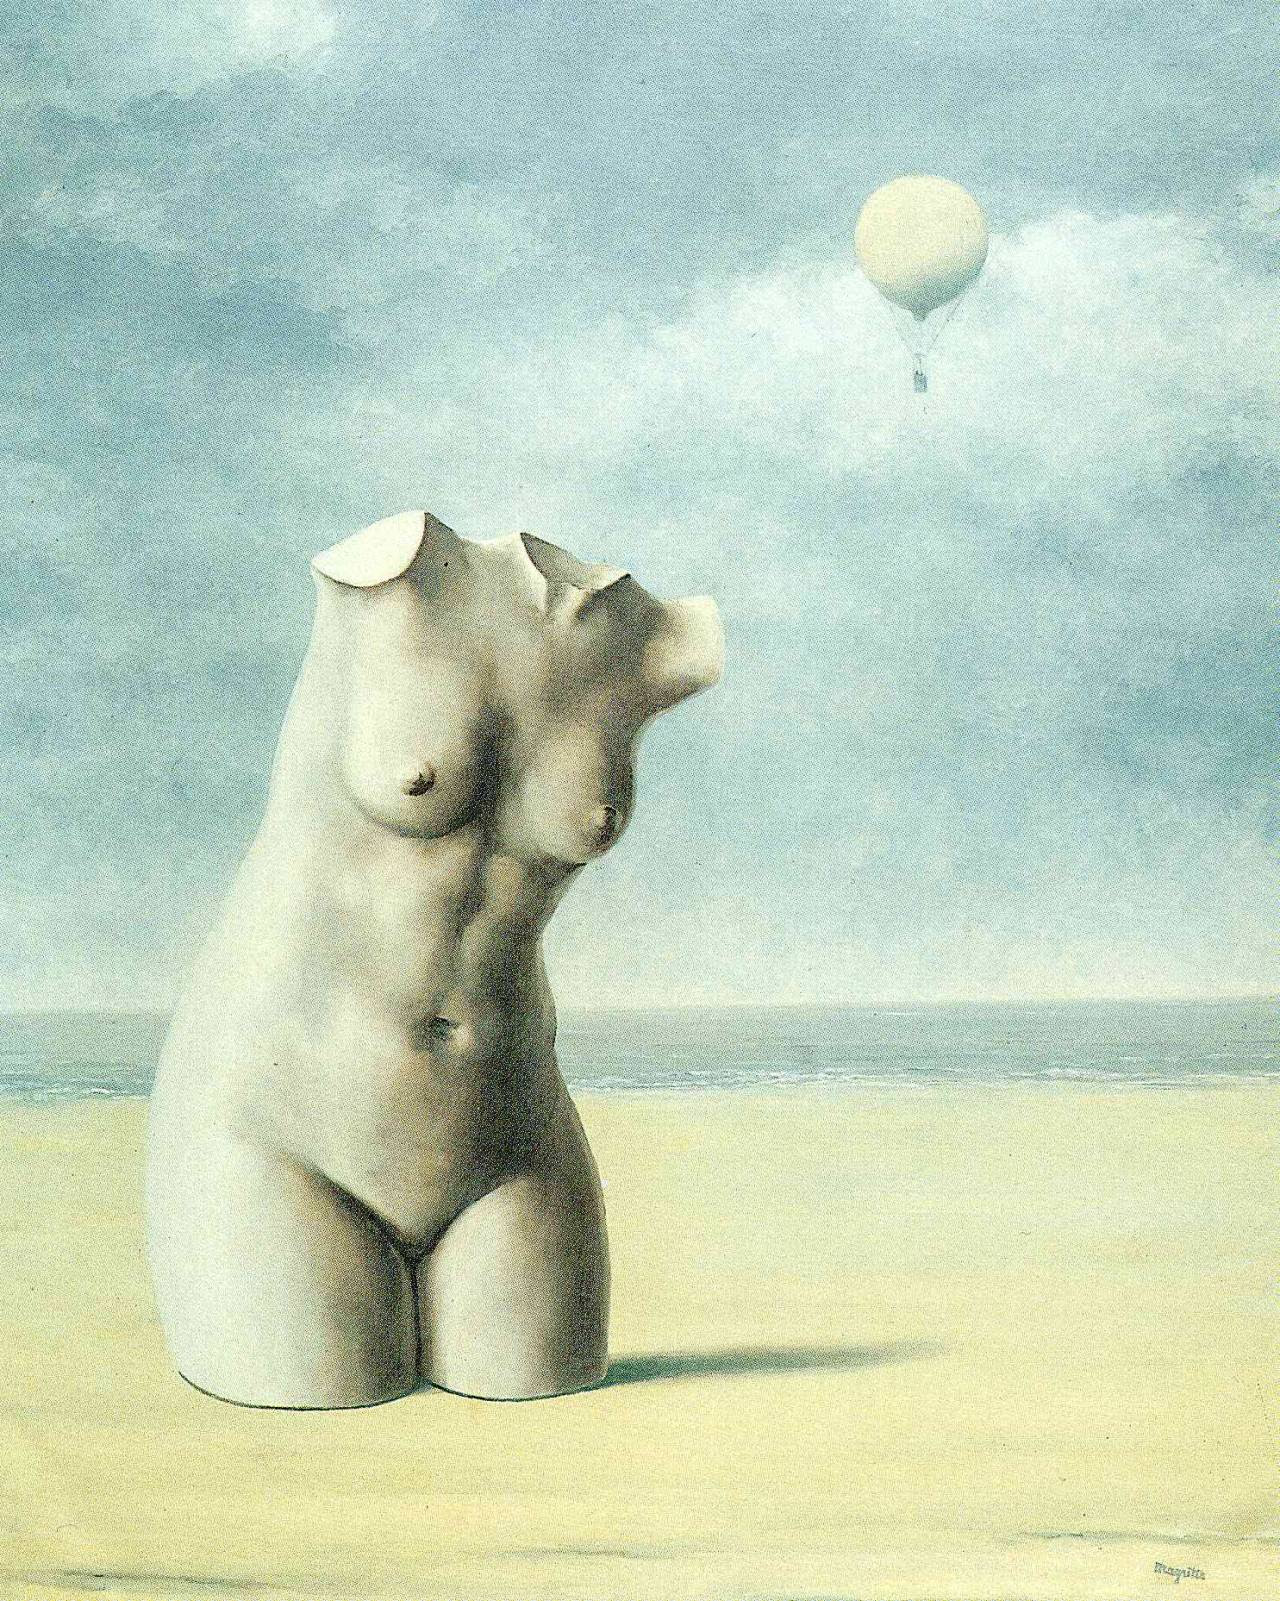 When the hour strikes, 1965 Rene Magritte